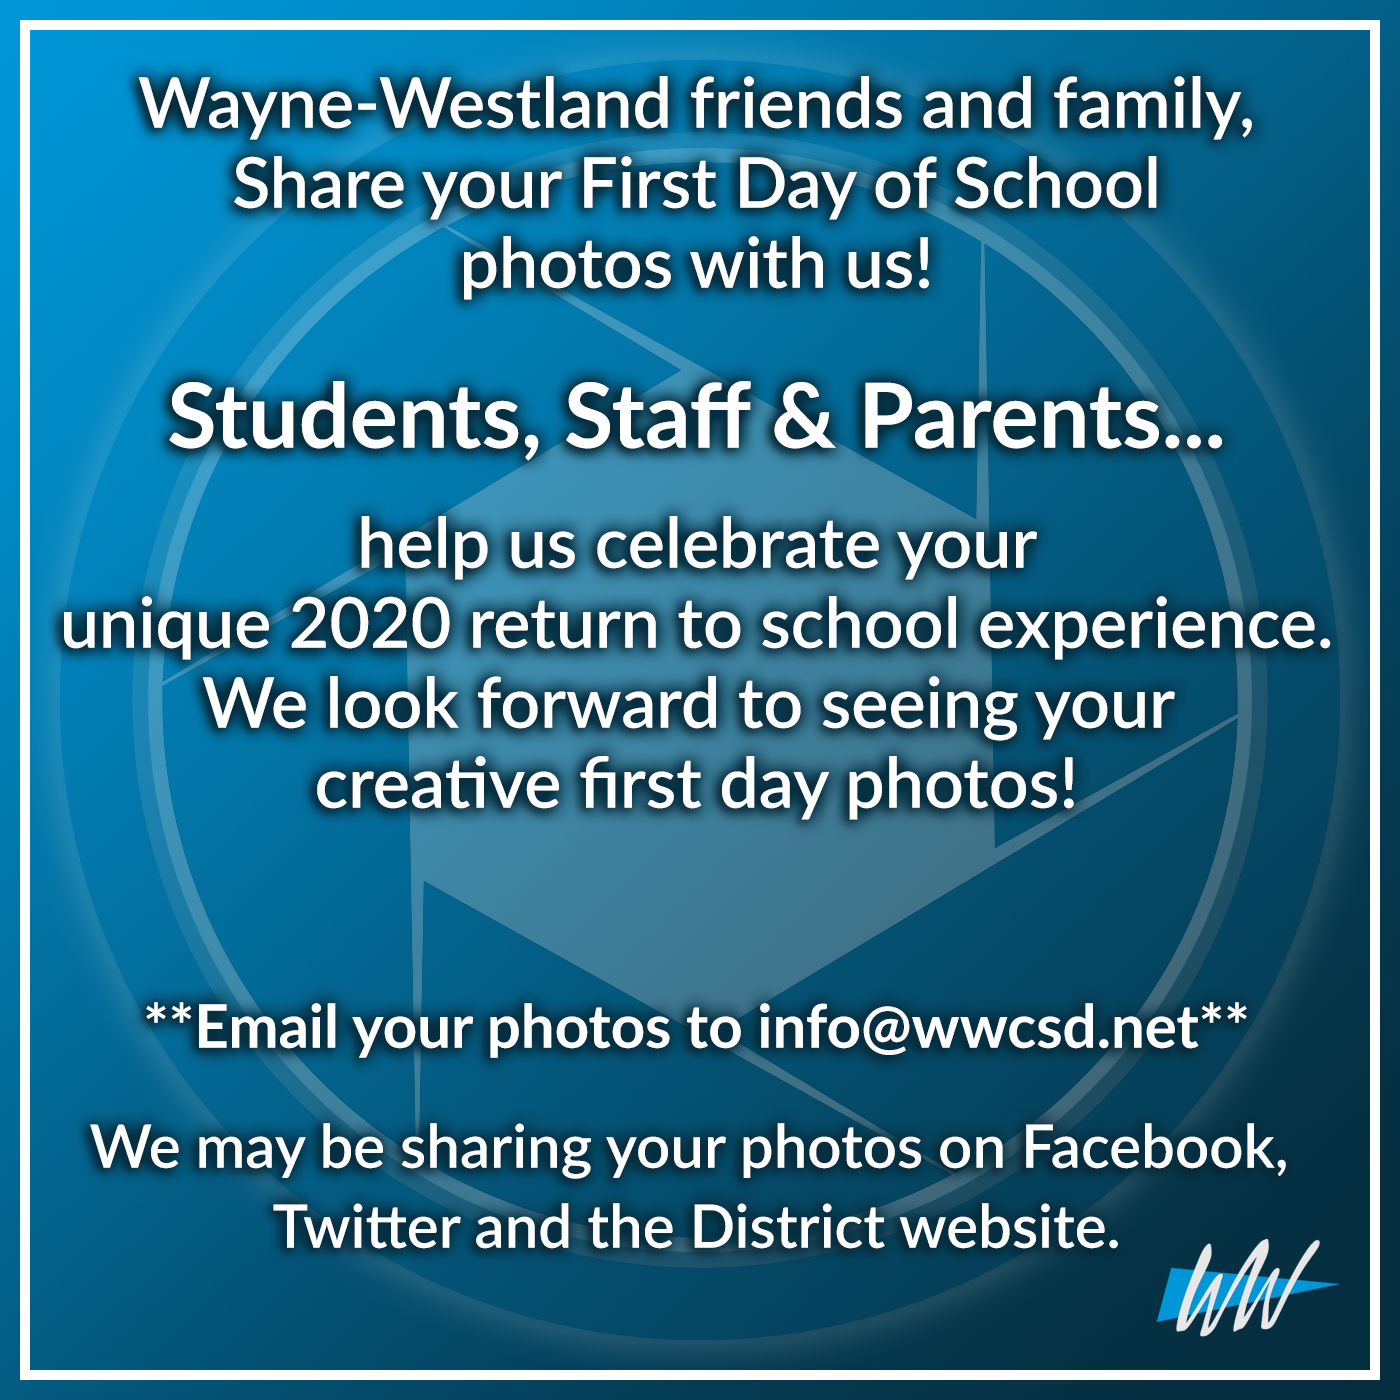 Welcome back Wayne-Westland friends and family!  We would like to invite everyone to share your First Day of School photos with us!   Students, Staff & Parents... help us celebrate your unique 2020 return to school experience. We look forward to seeing your creative first day photos!   Email your photos to info@wwcsd.net  We may be sharing your photos on Facebook, Twitter and the District website.